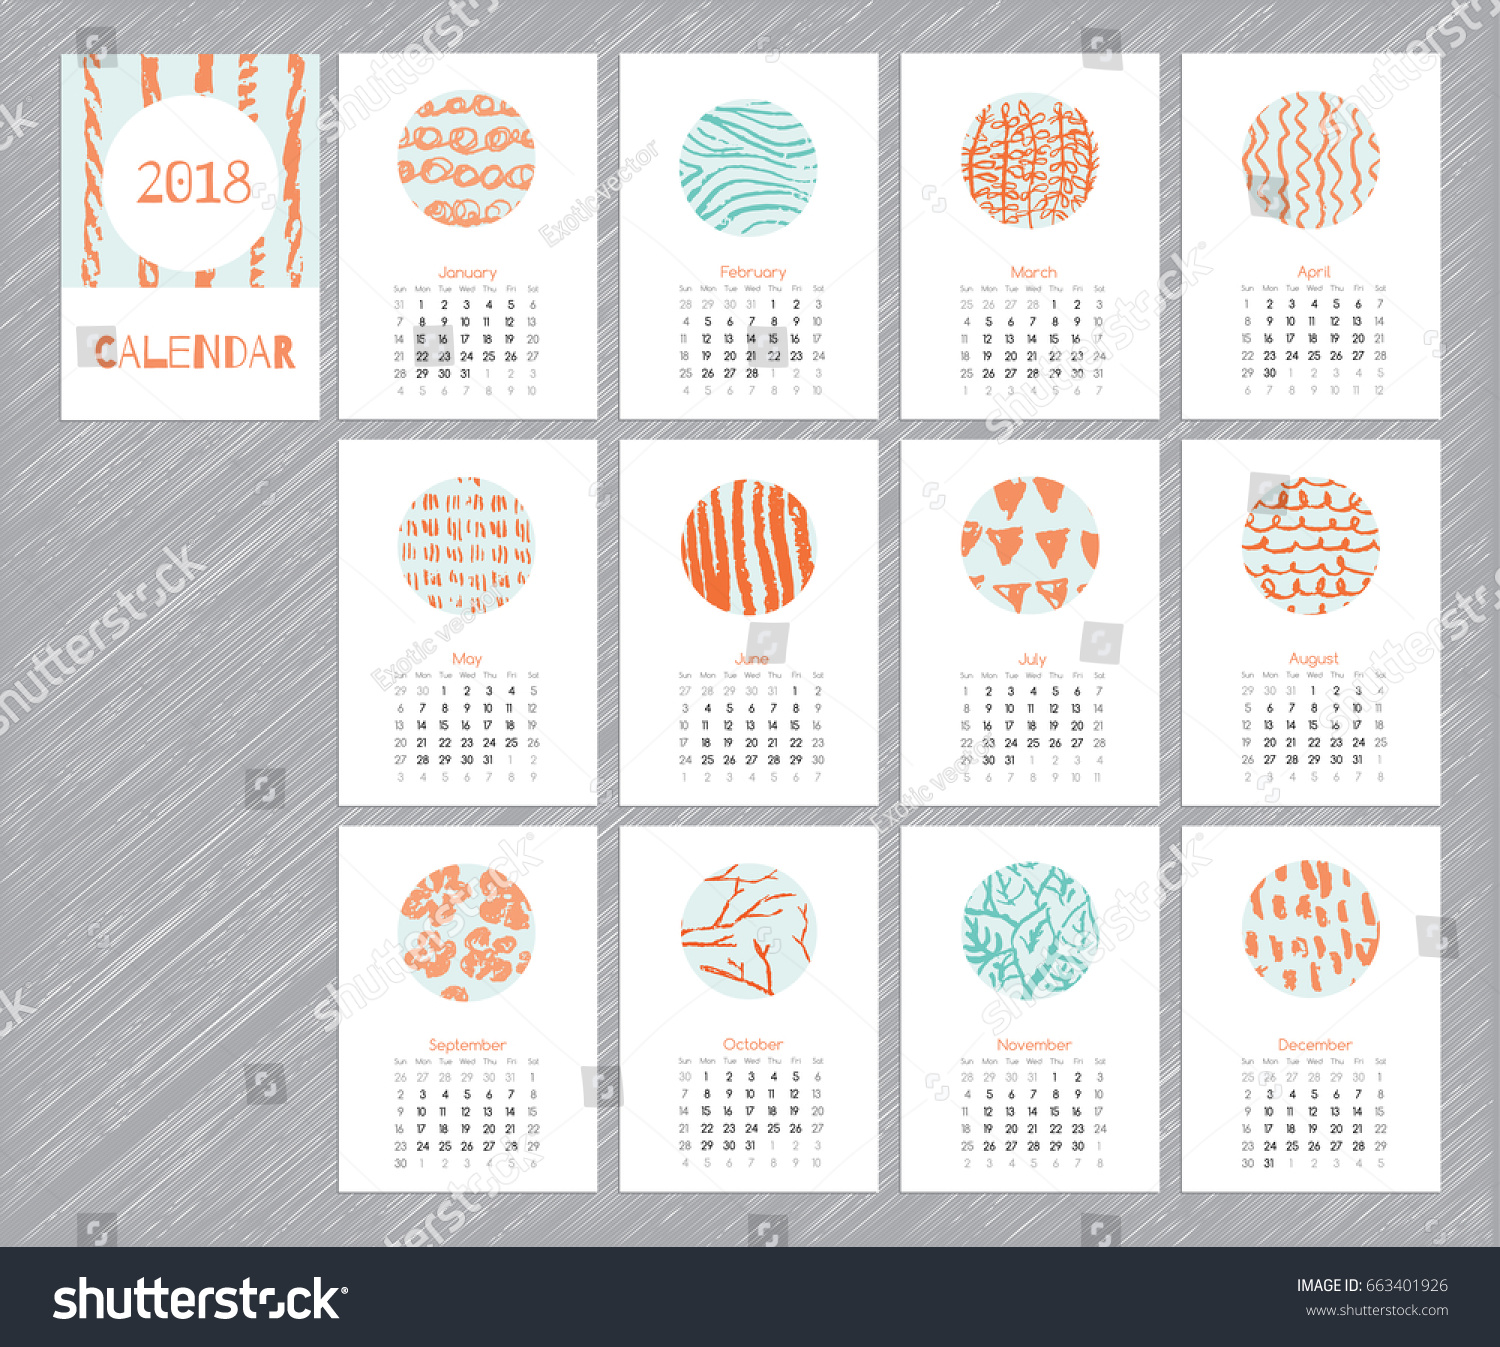 Calendar 2018 With Hand Drawn Textures Unique Design For Each Month Vector Planner